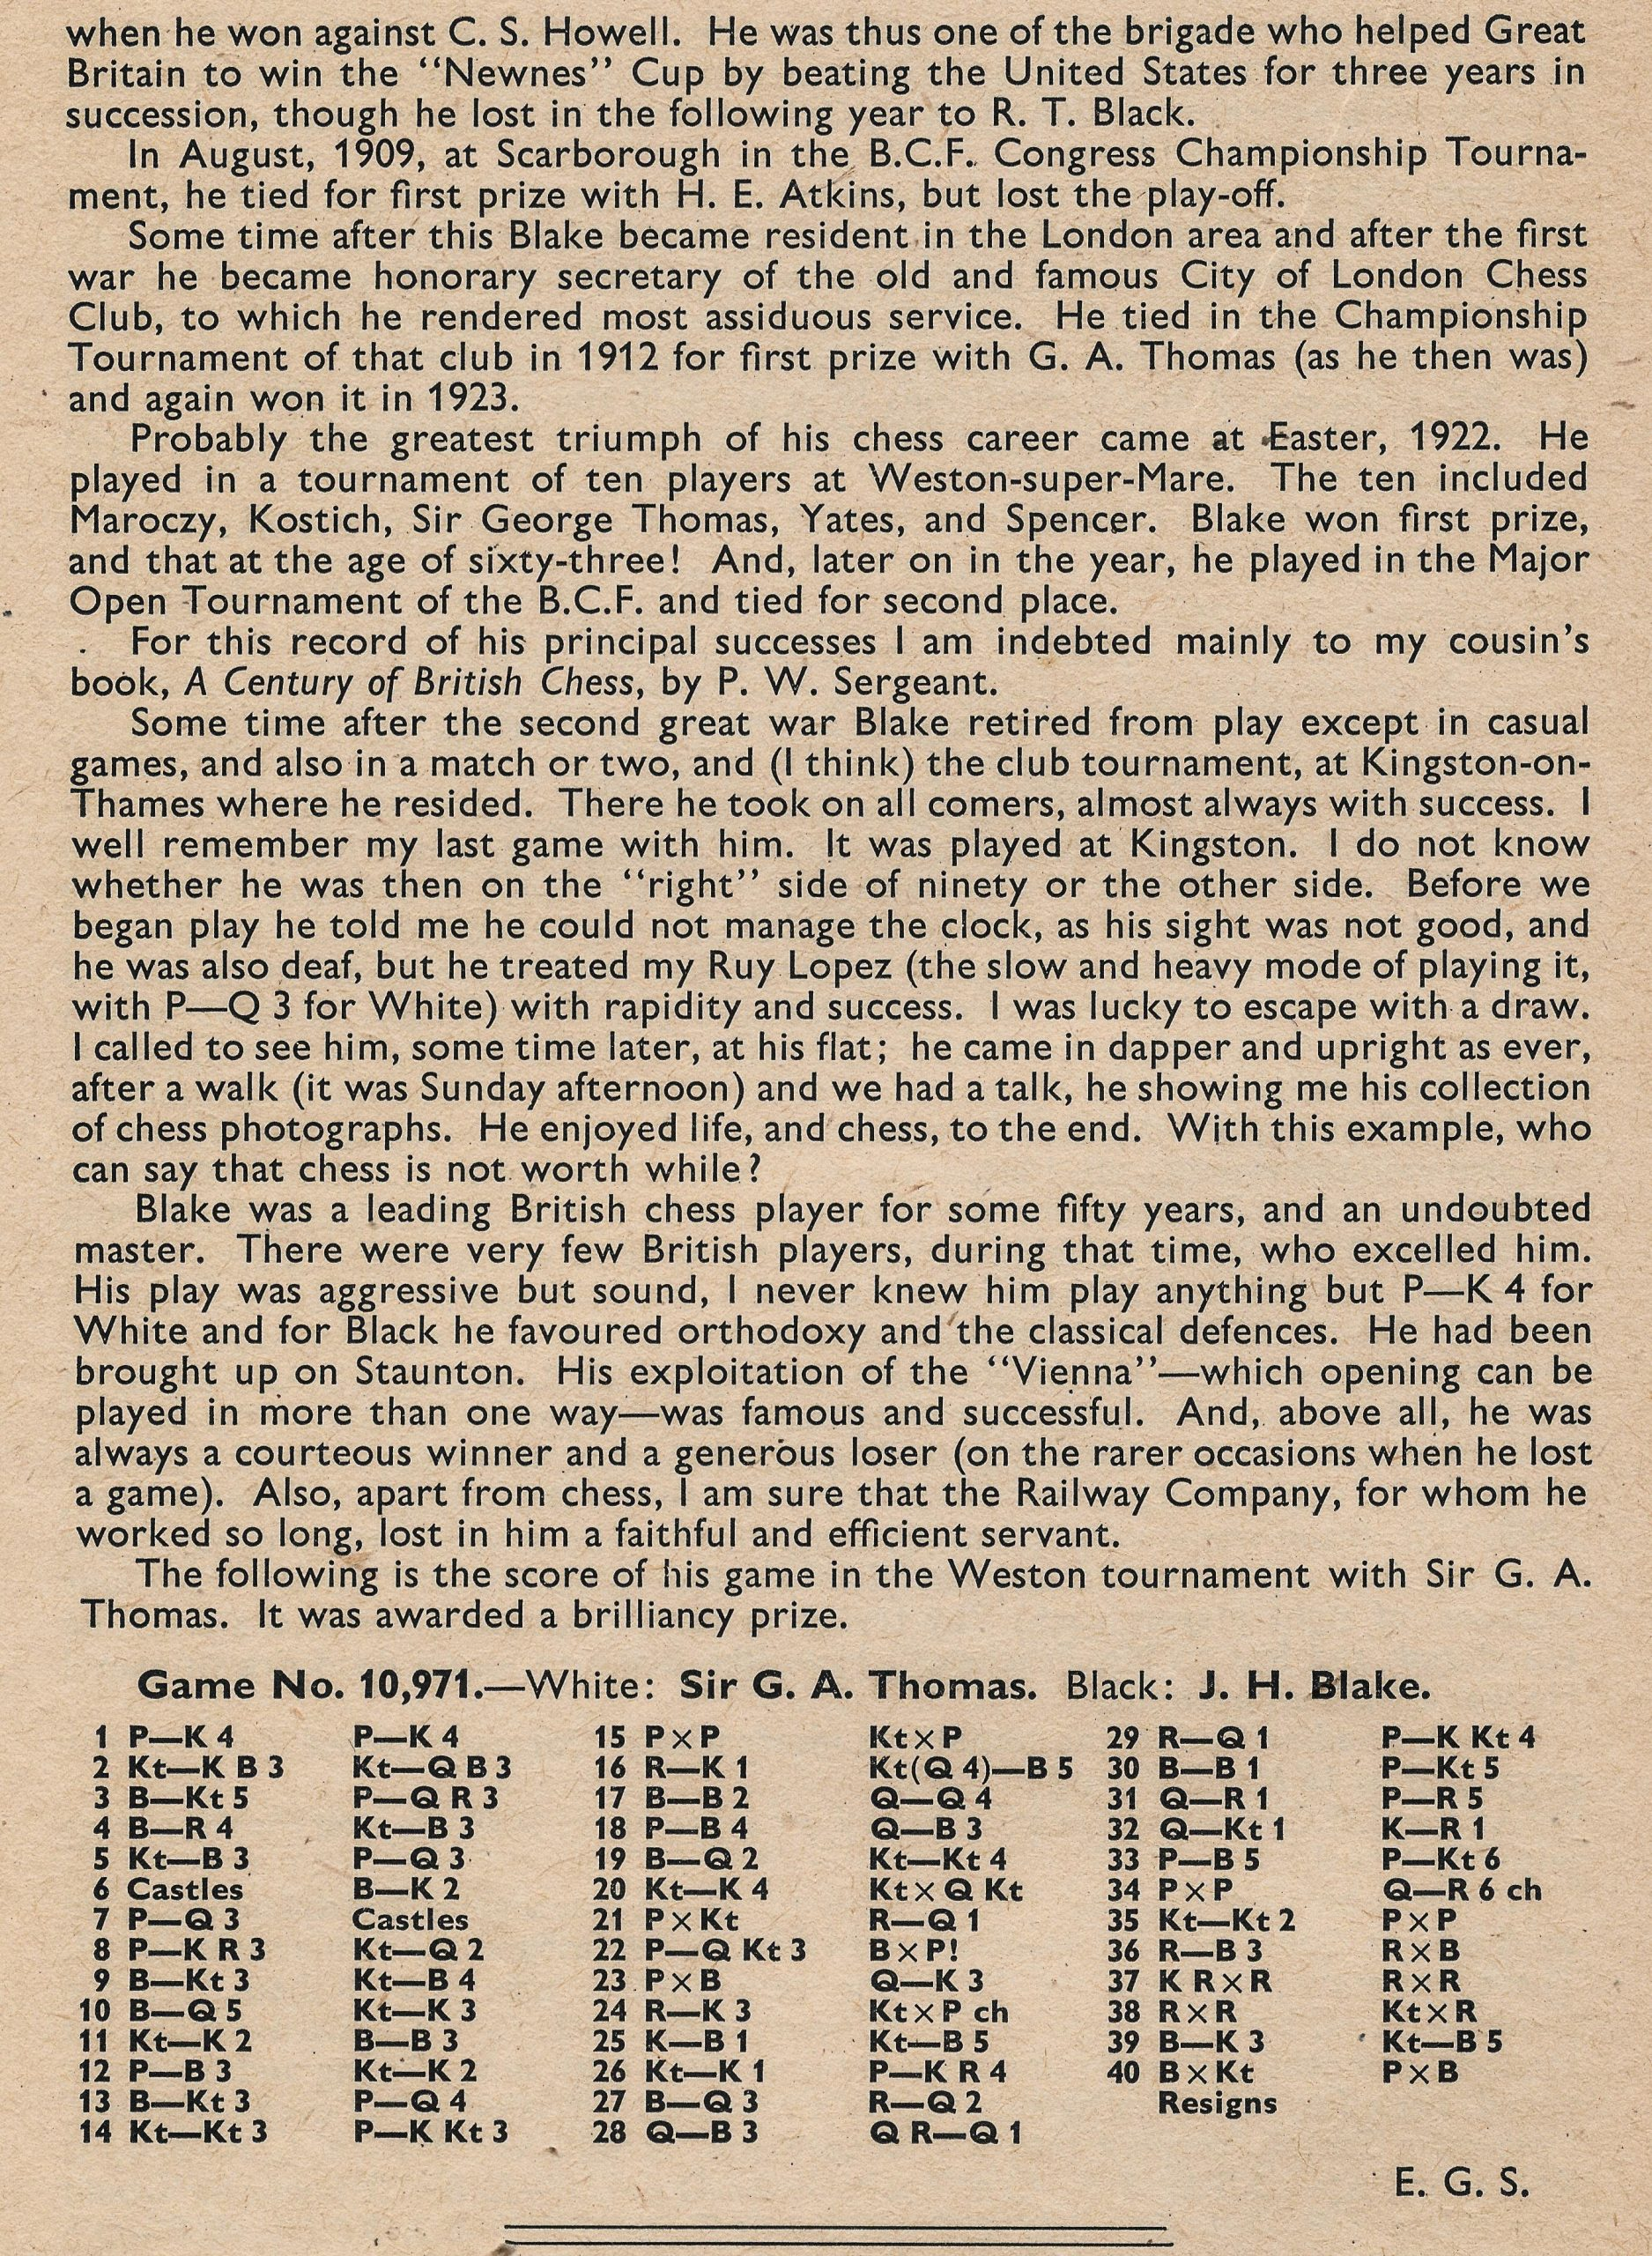 British Chess Magazine, Volume LXXII (72, 1952), Number 2 (February) pp. 44 - 46